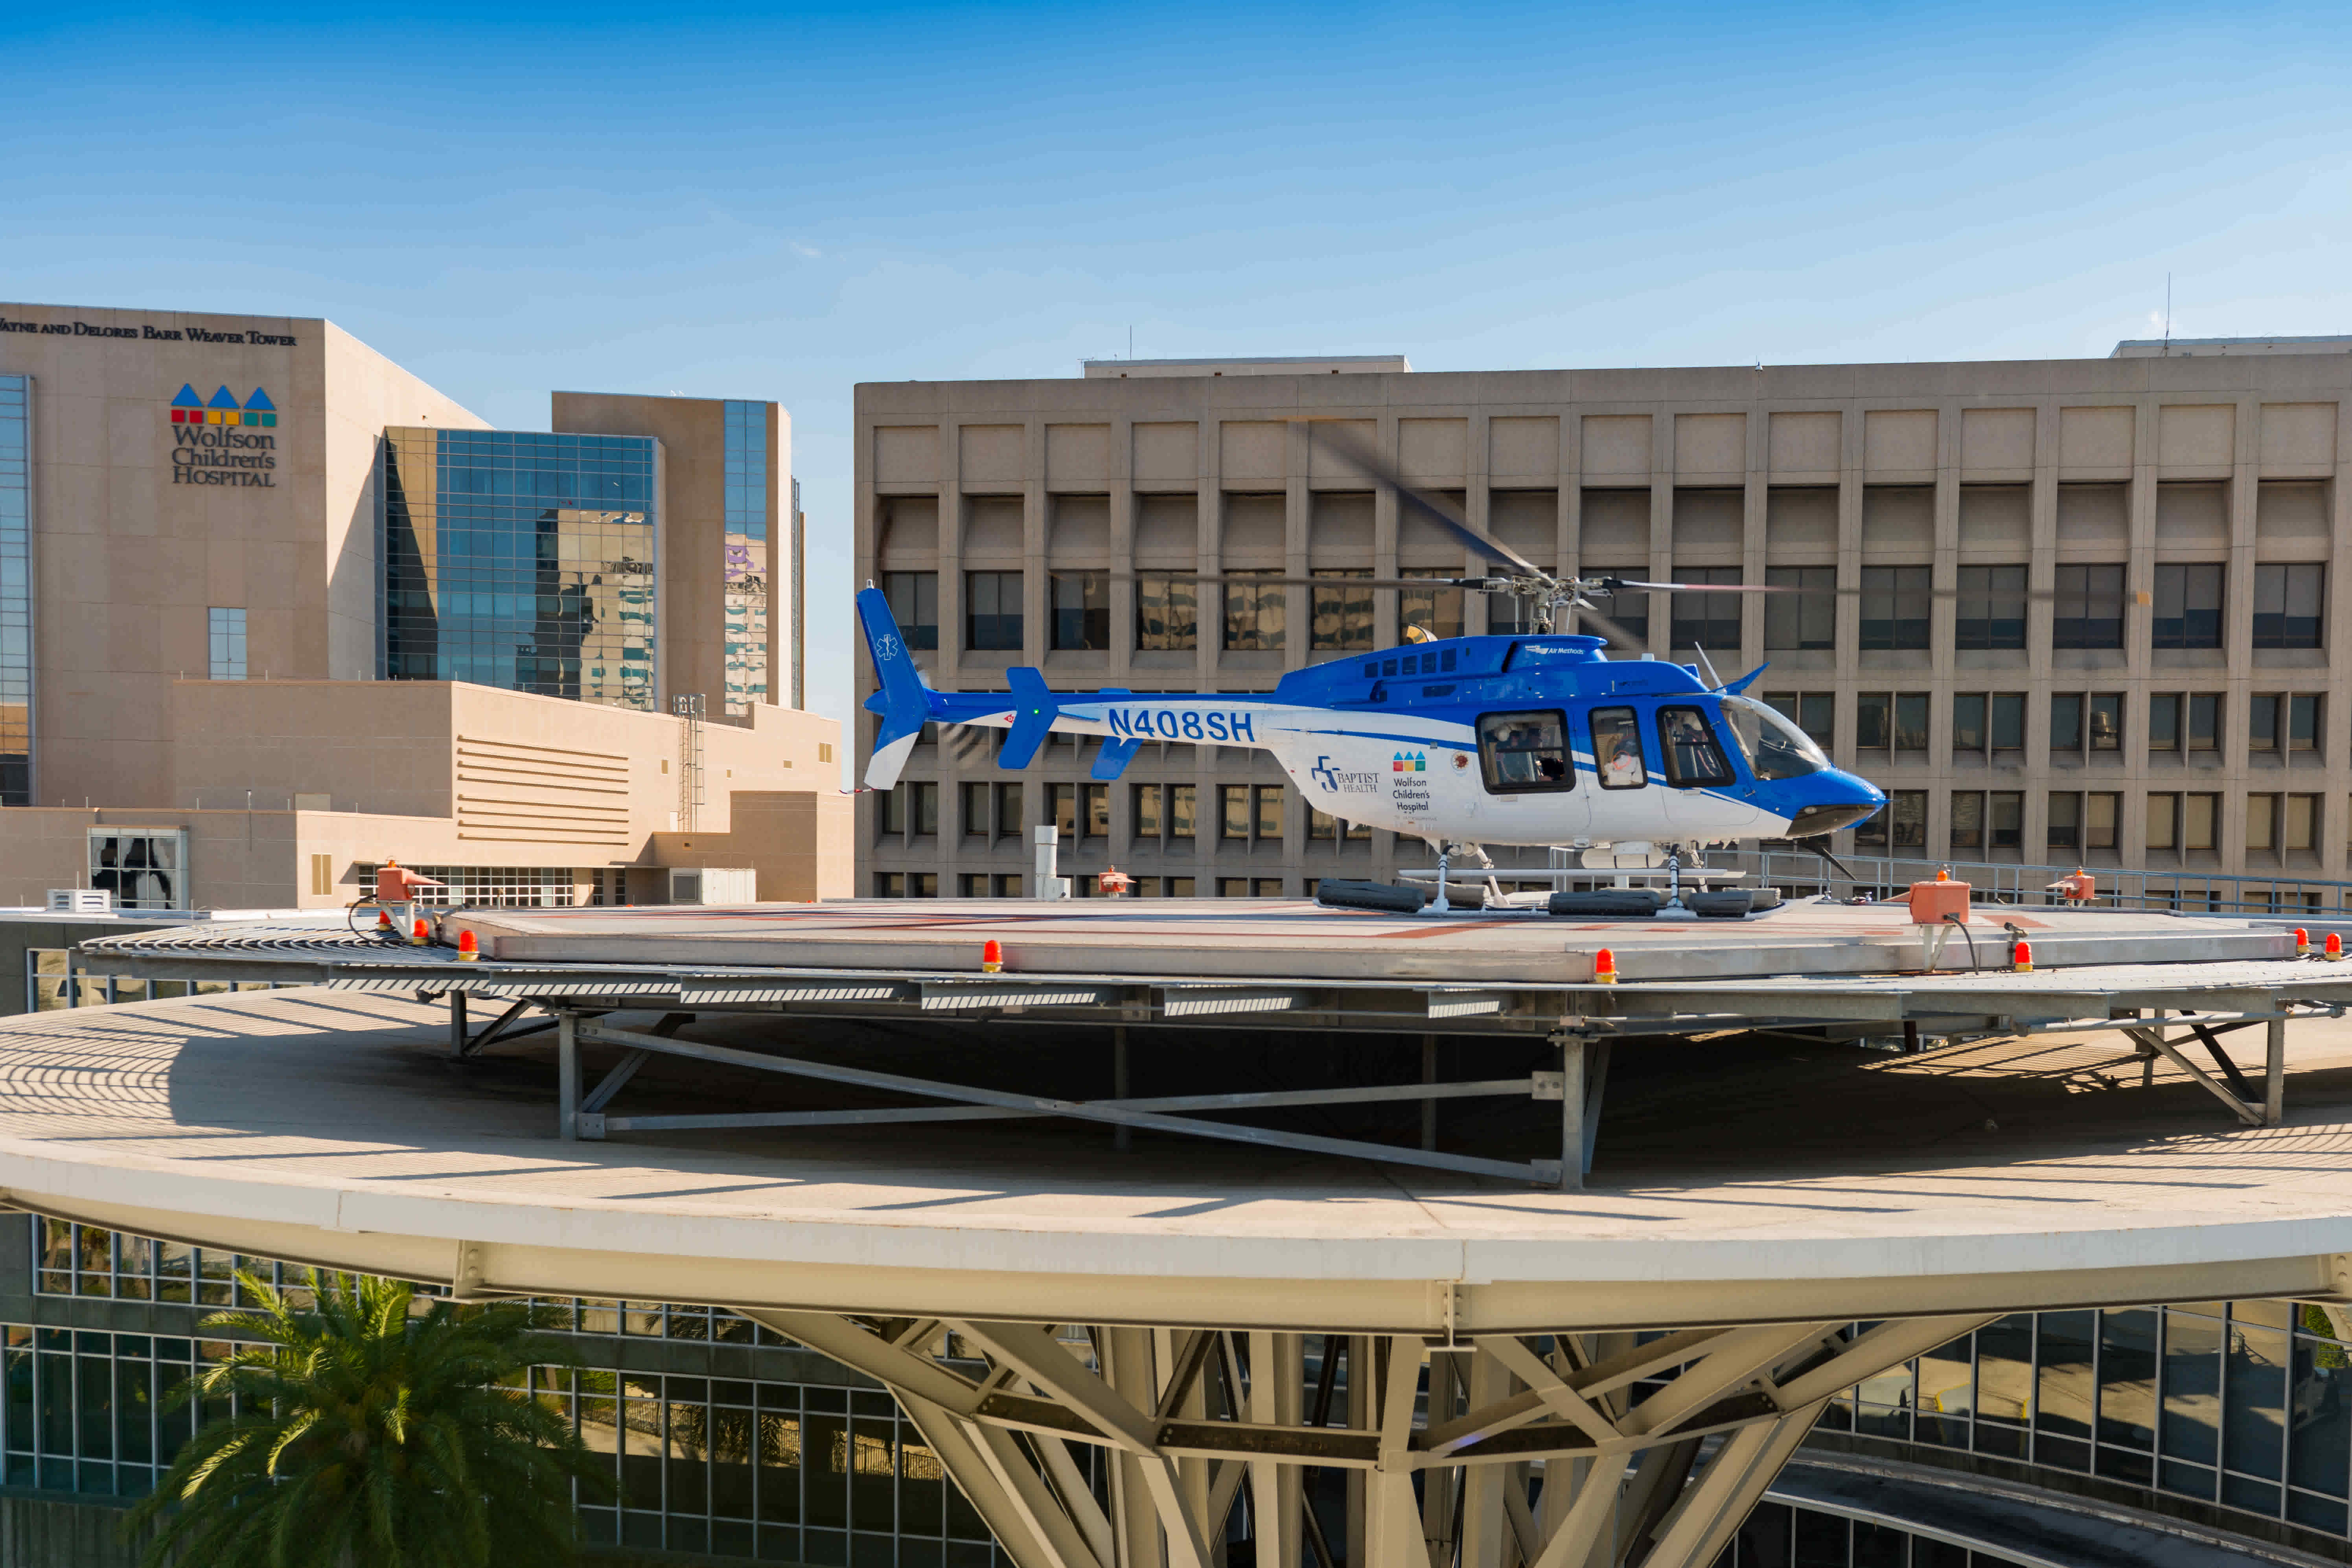 Wolfson Children's Hospital Life Flight